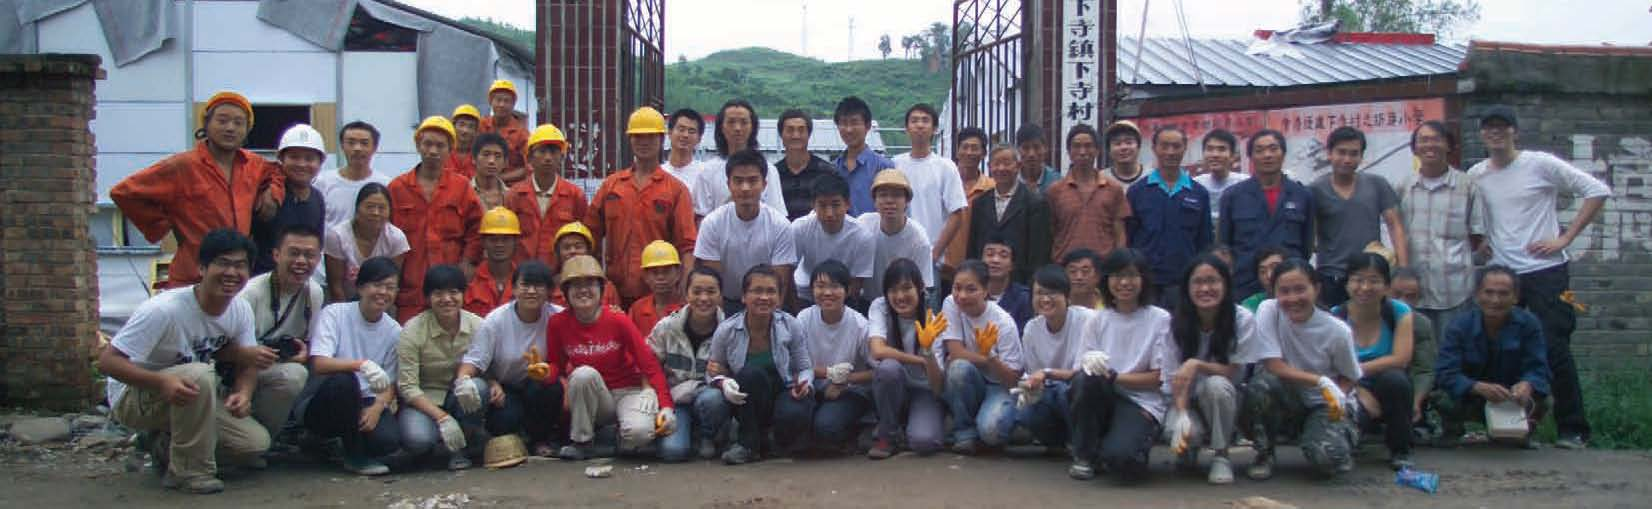 University students from the mainland and Hong Kong took part in the construction of New Bud Primary School